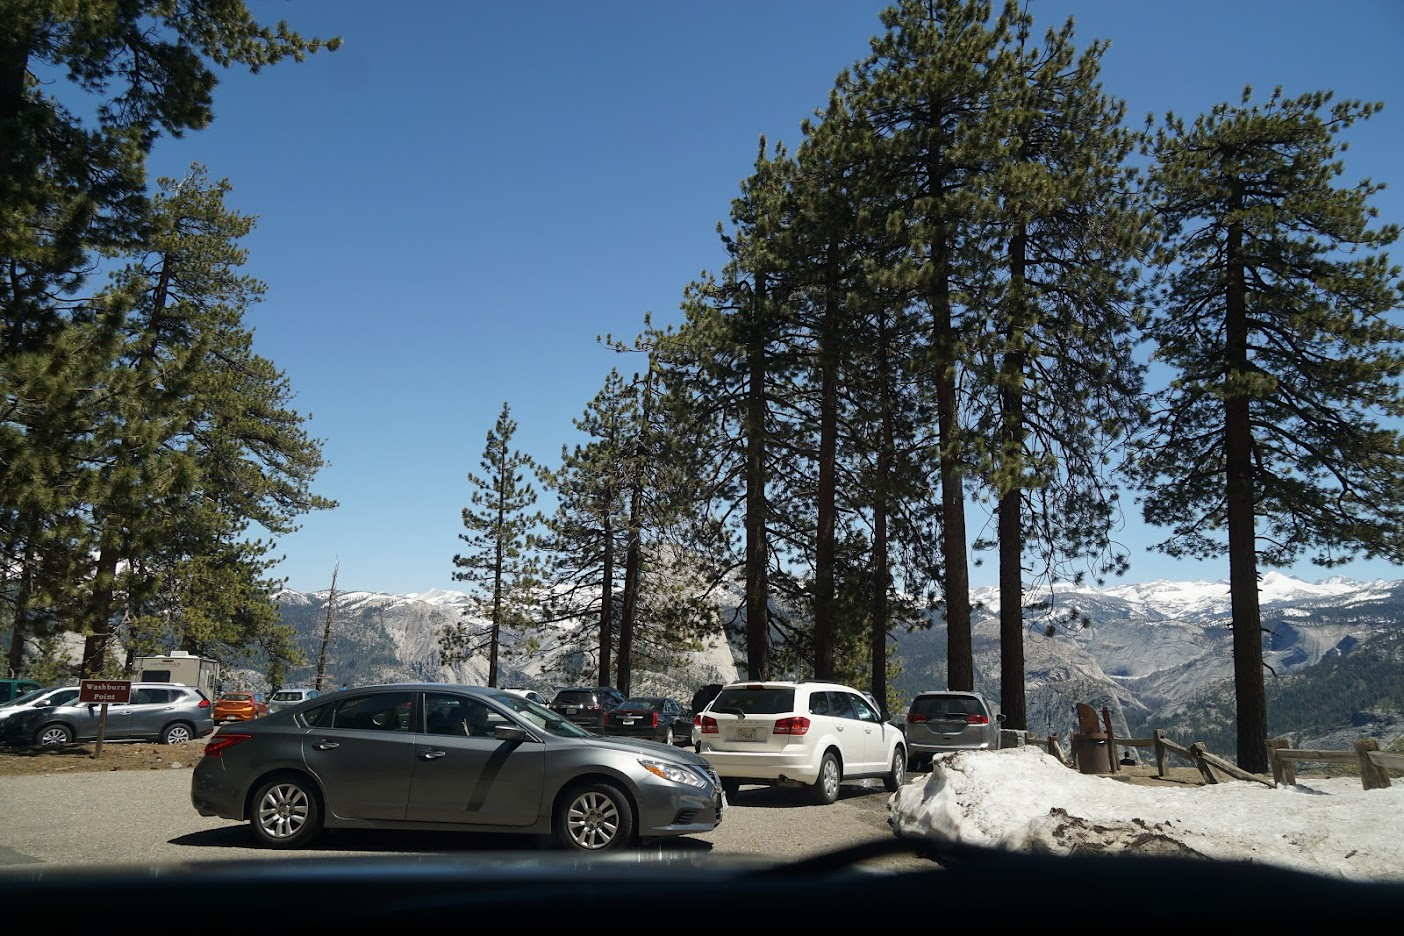 Yosemite National Park Parking